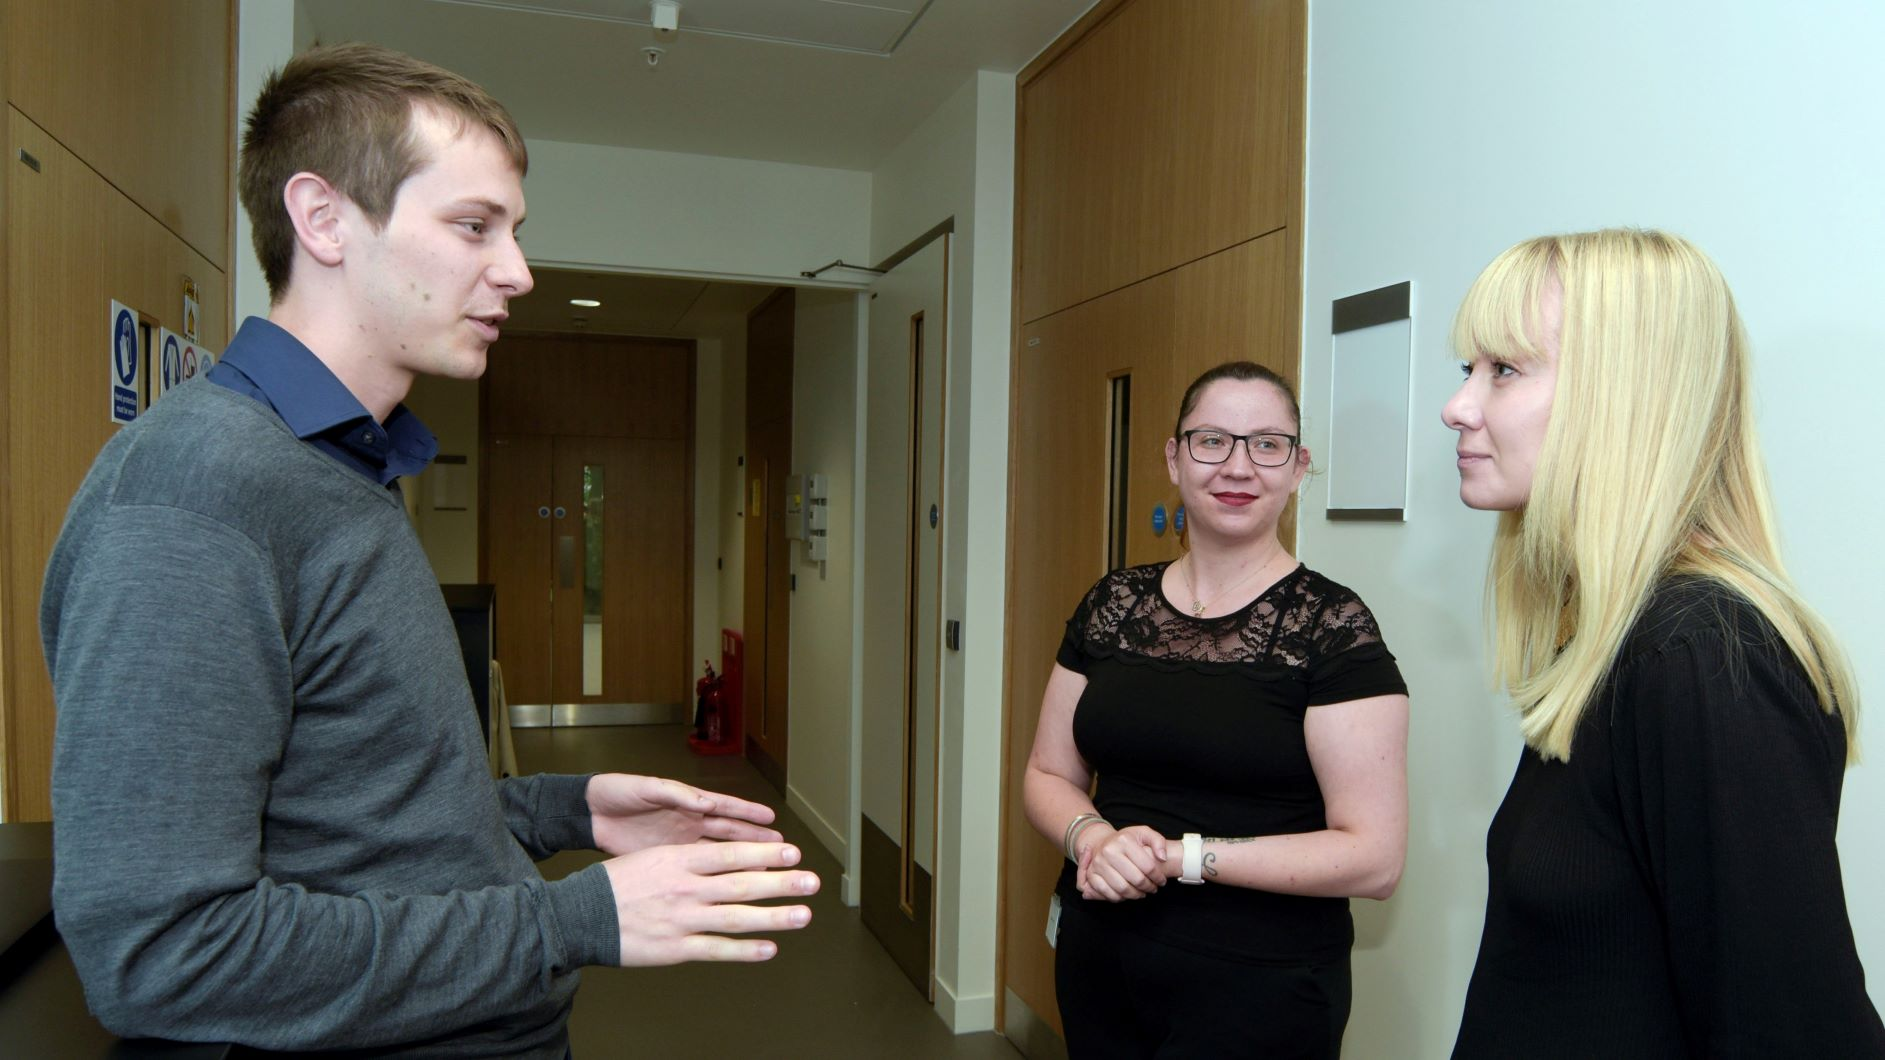 Innovation Minister meets moa